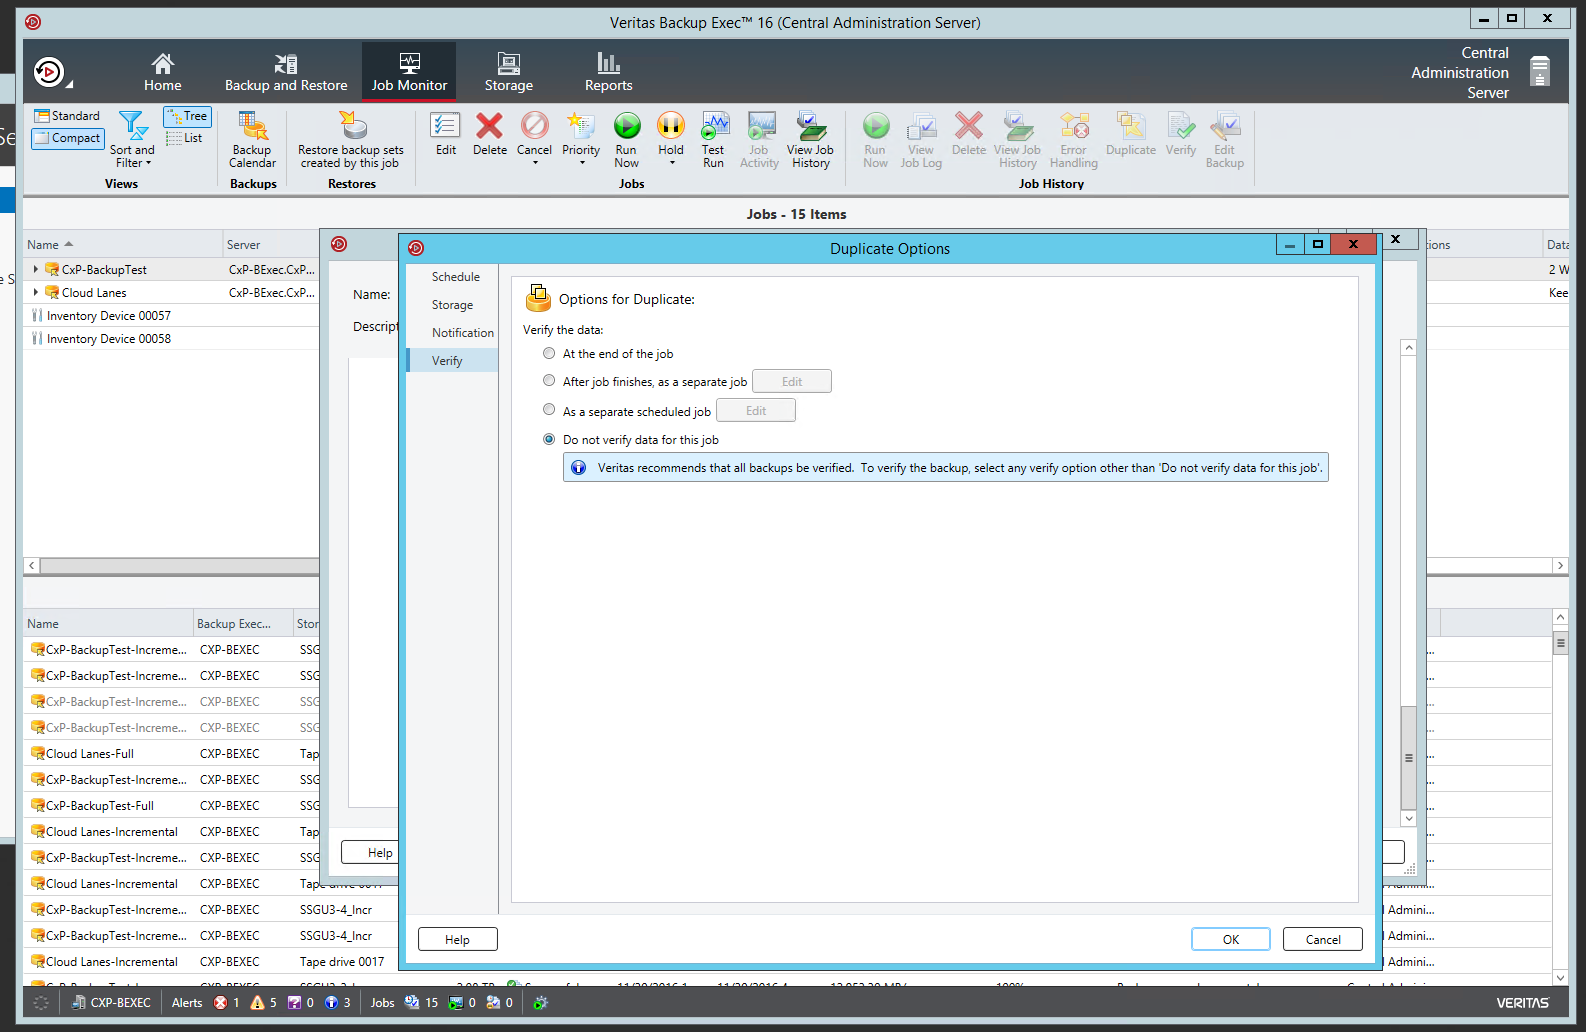 Configure backup exec 2010 + 2012 on vmware to backup to tape